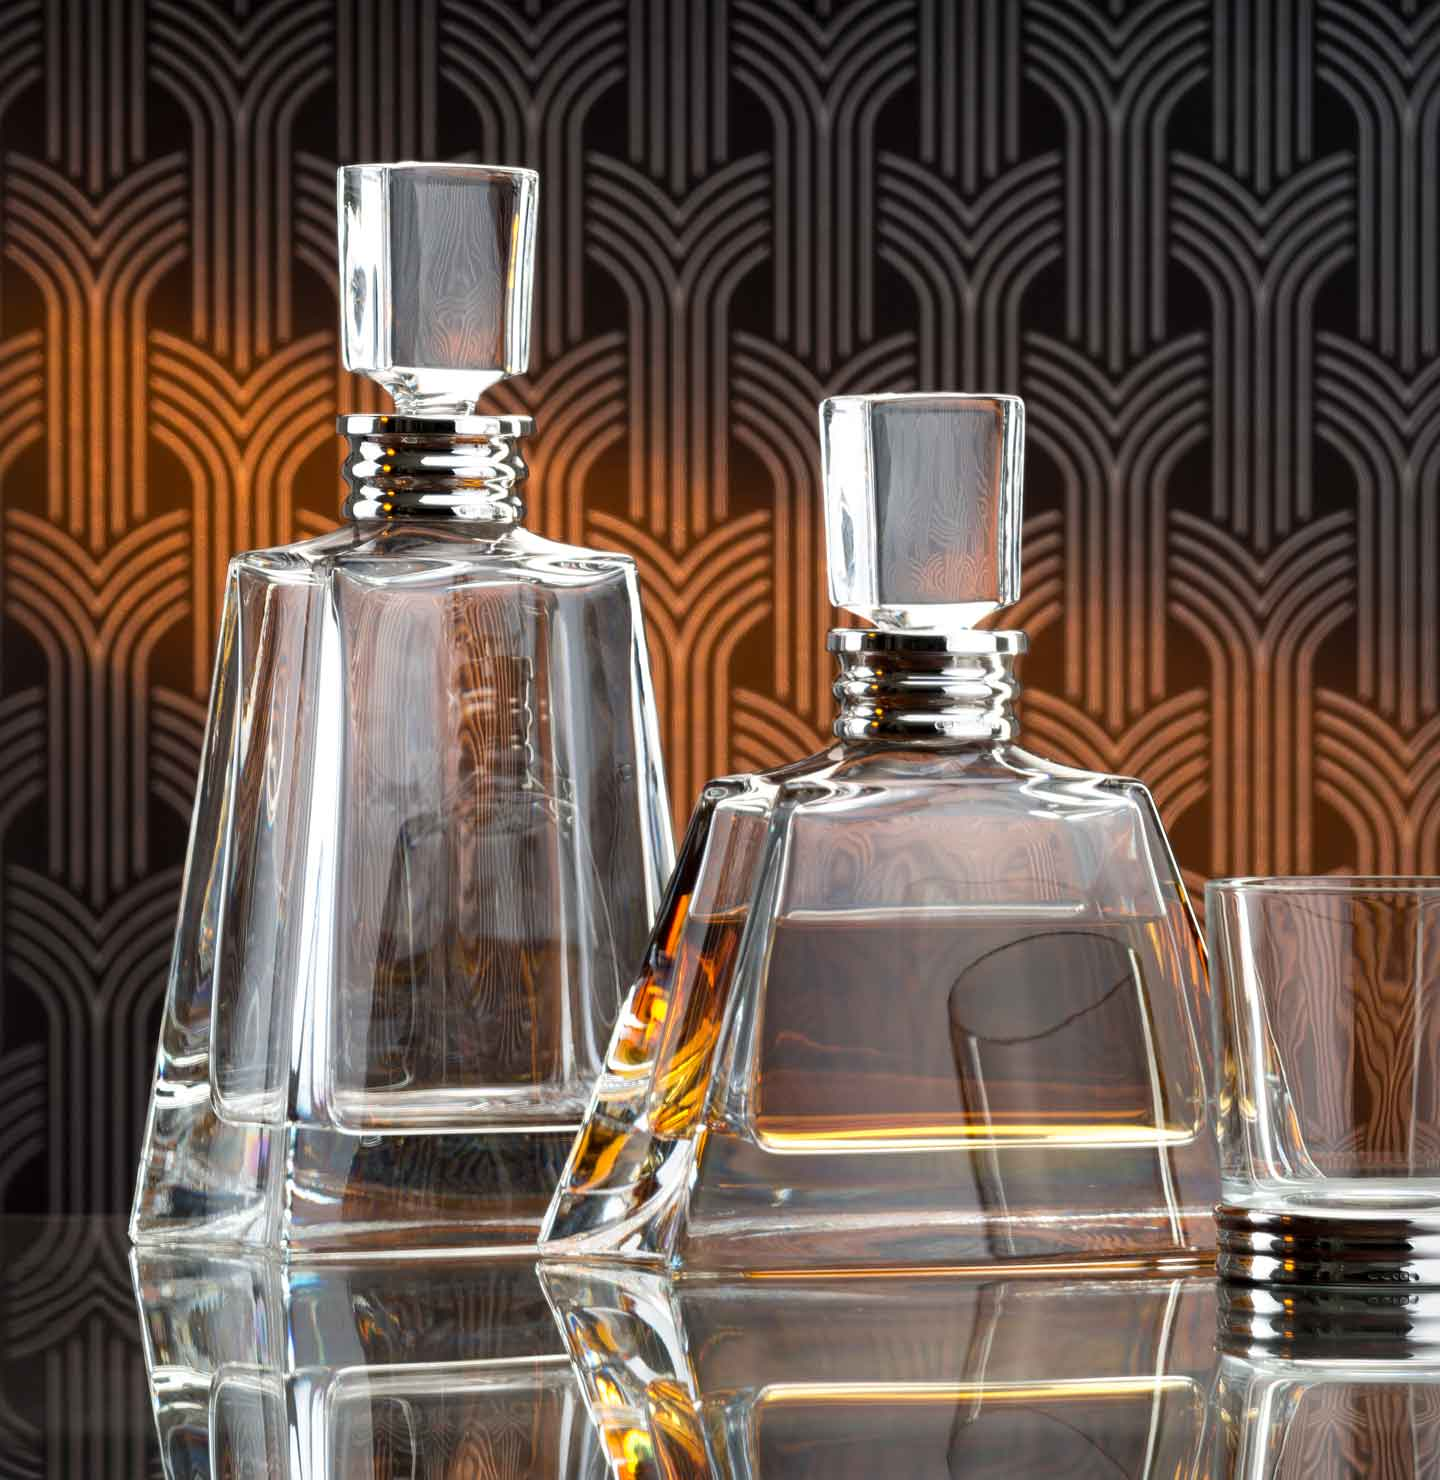 Decanters, funnels and labels in Sterling Silver, Pewter or Crystal